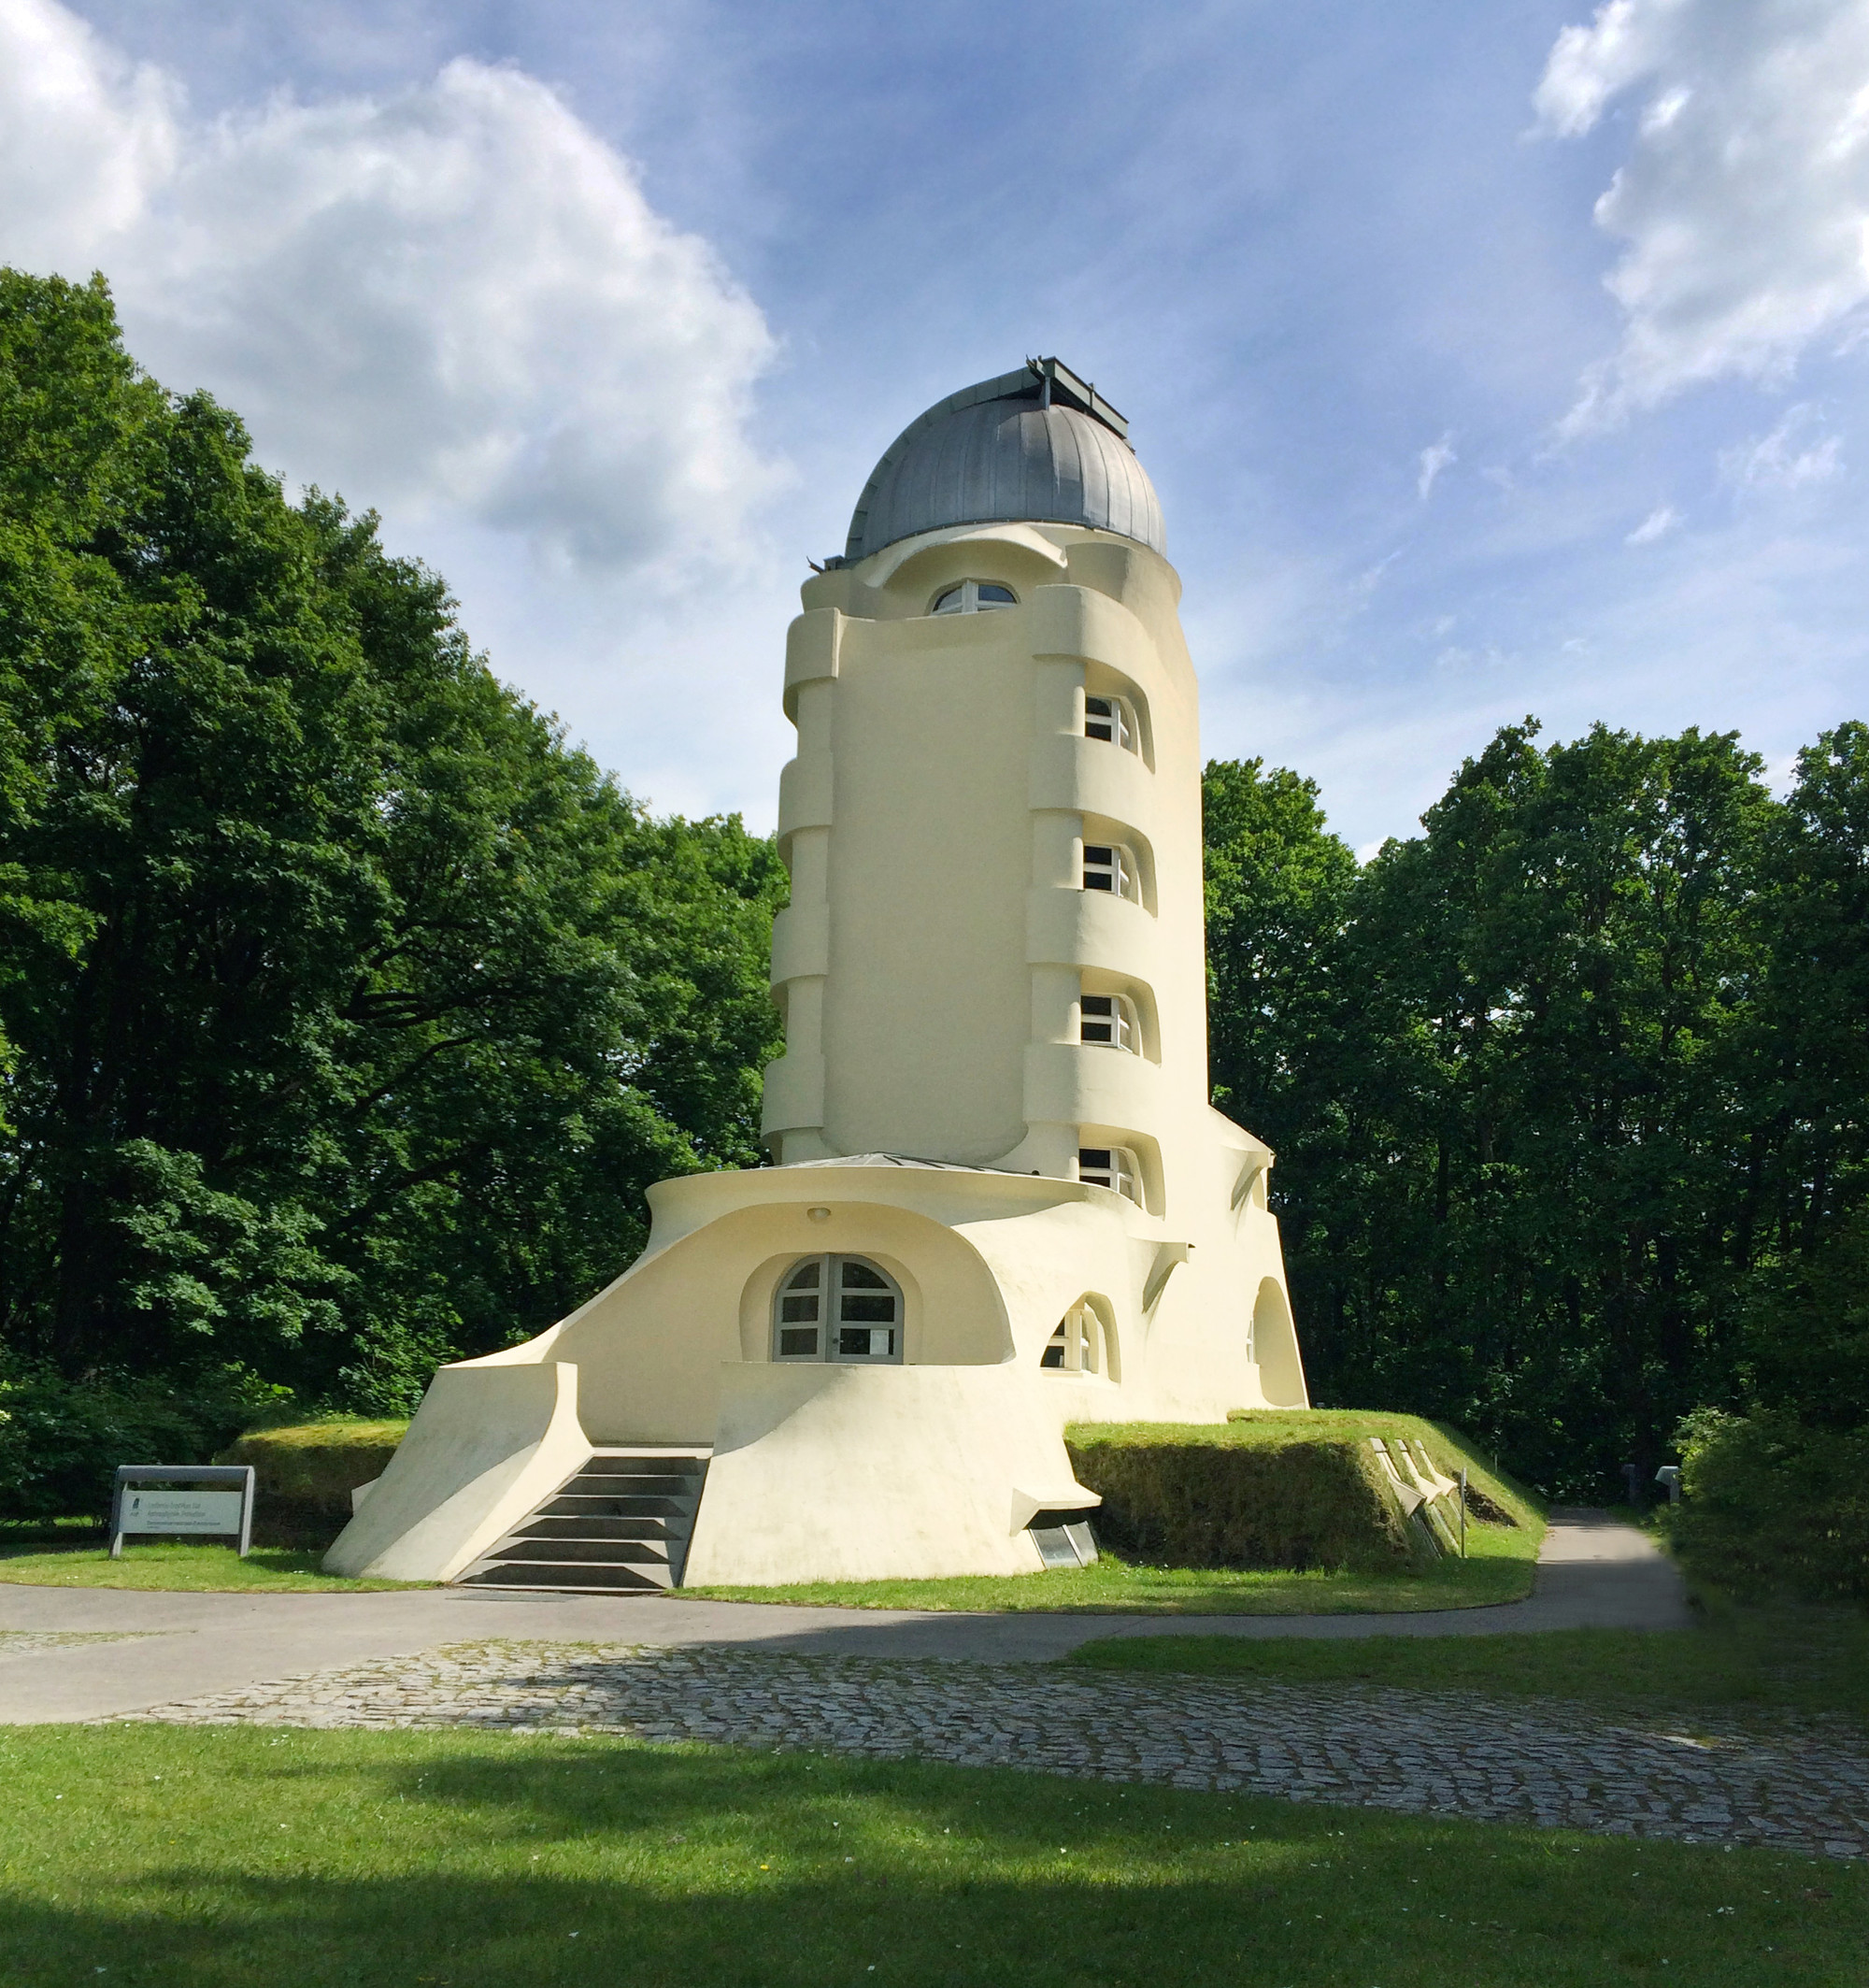 AD Classics: The Einstein Tower / Erich Mendelsohn, © Gili Merin